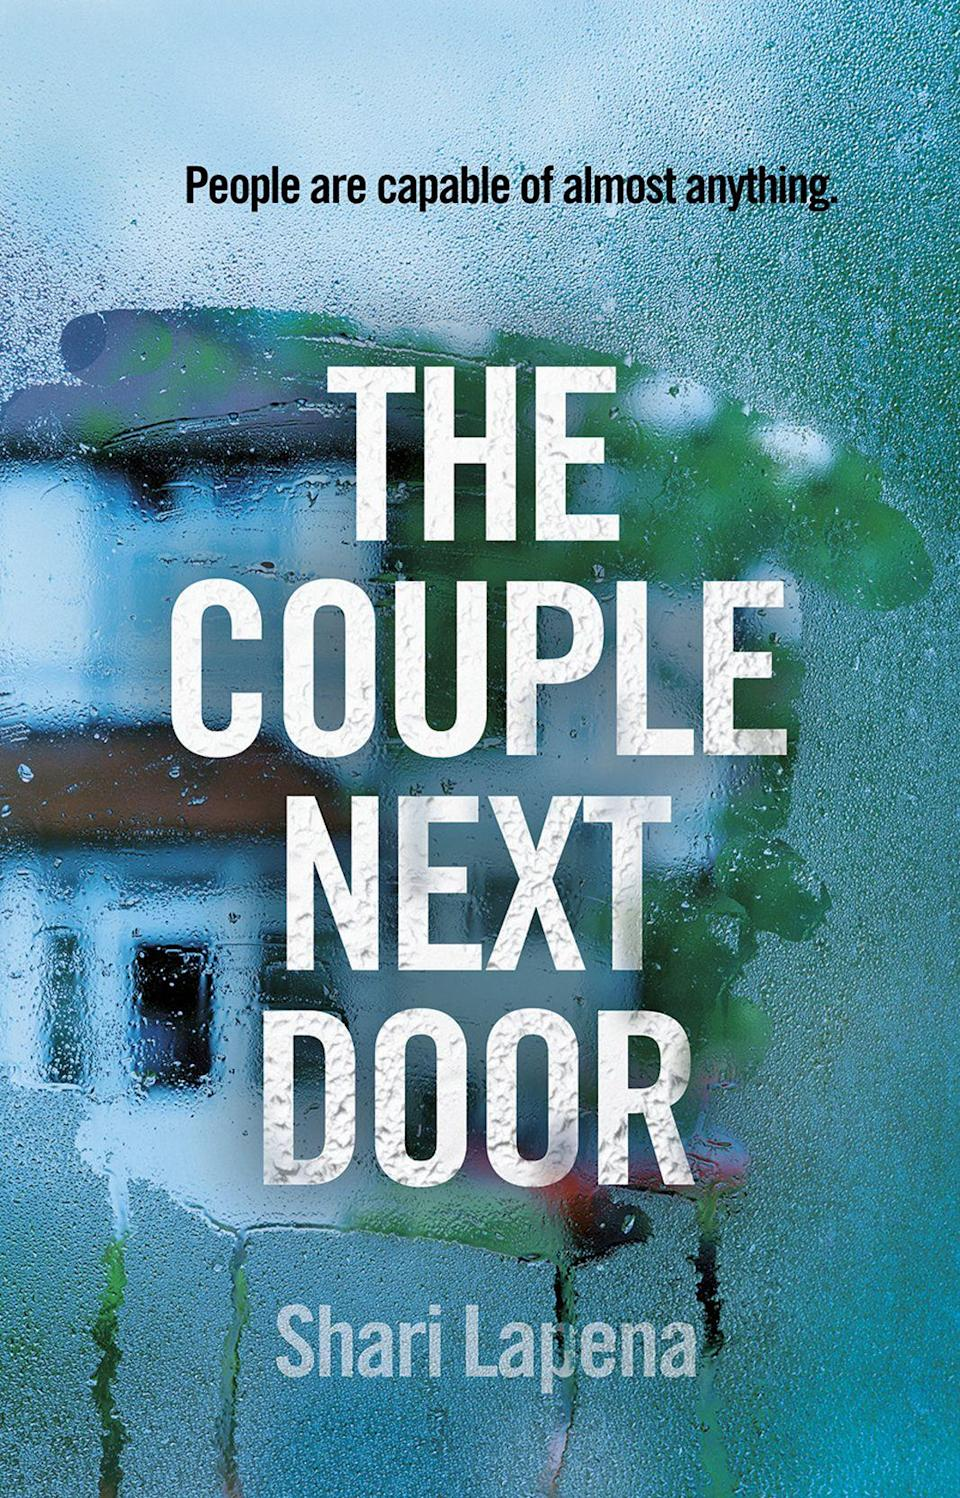 <p><strong><em>The Couple Next Door</em></strong></p><p>By Shari Lapena</p><p>A page-turner for fans of <em>Gone Girl</em>, <em>The Couple Next Door</em> follows Anne and Marco Conti, a couple who seem to have it all: a perfect home, great relationship and a beautiful baby girl – until one night, a frightening crime changes their lives.</p><p>The deeper the investigators delve into the details of the Conti's lives, the clearer it becomes that everything is not as it seems. Expect surprises and secrets – lots of them.</p>